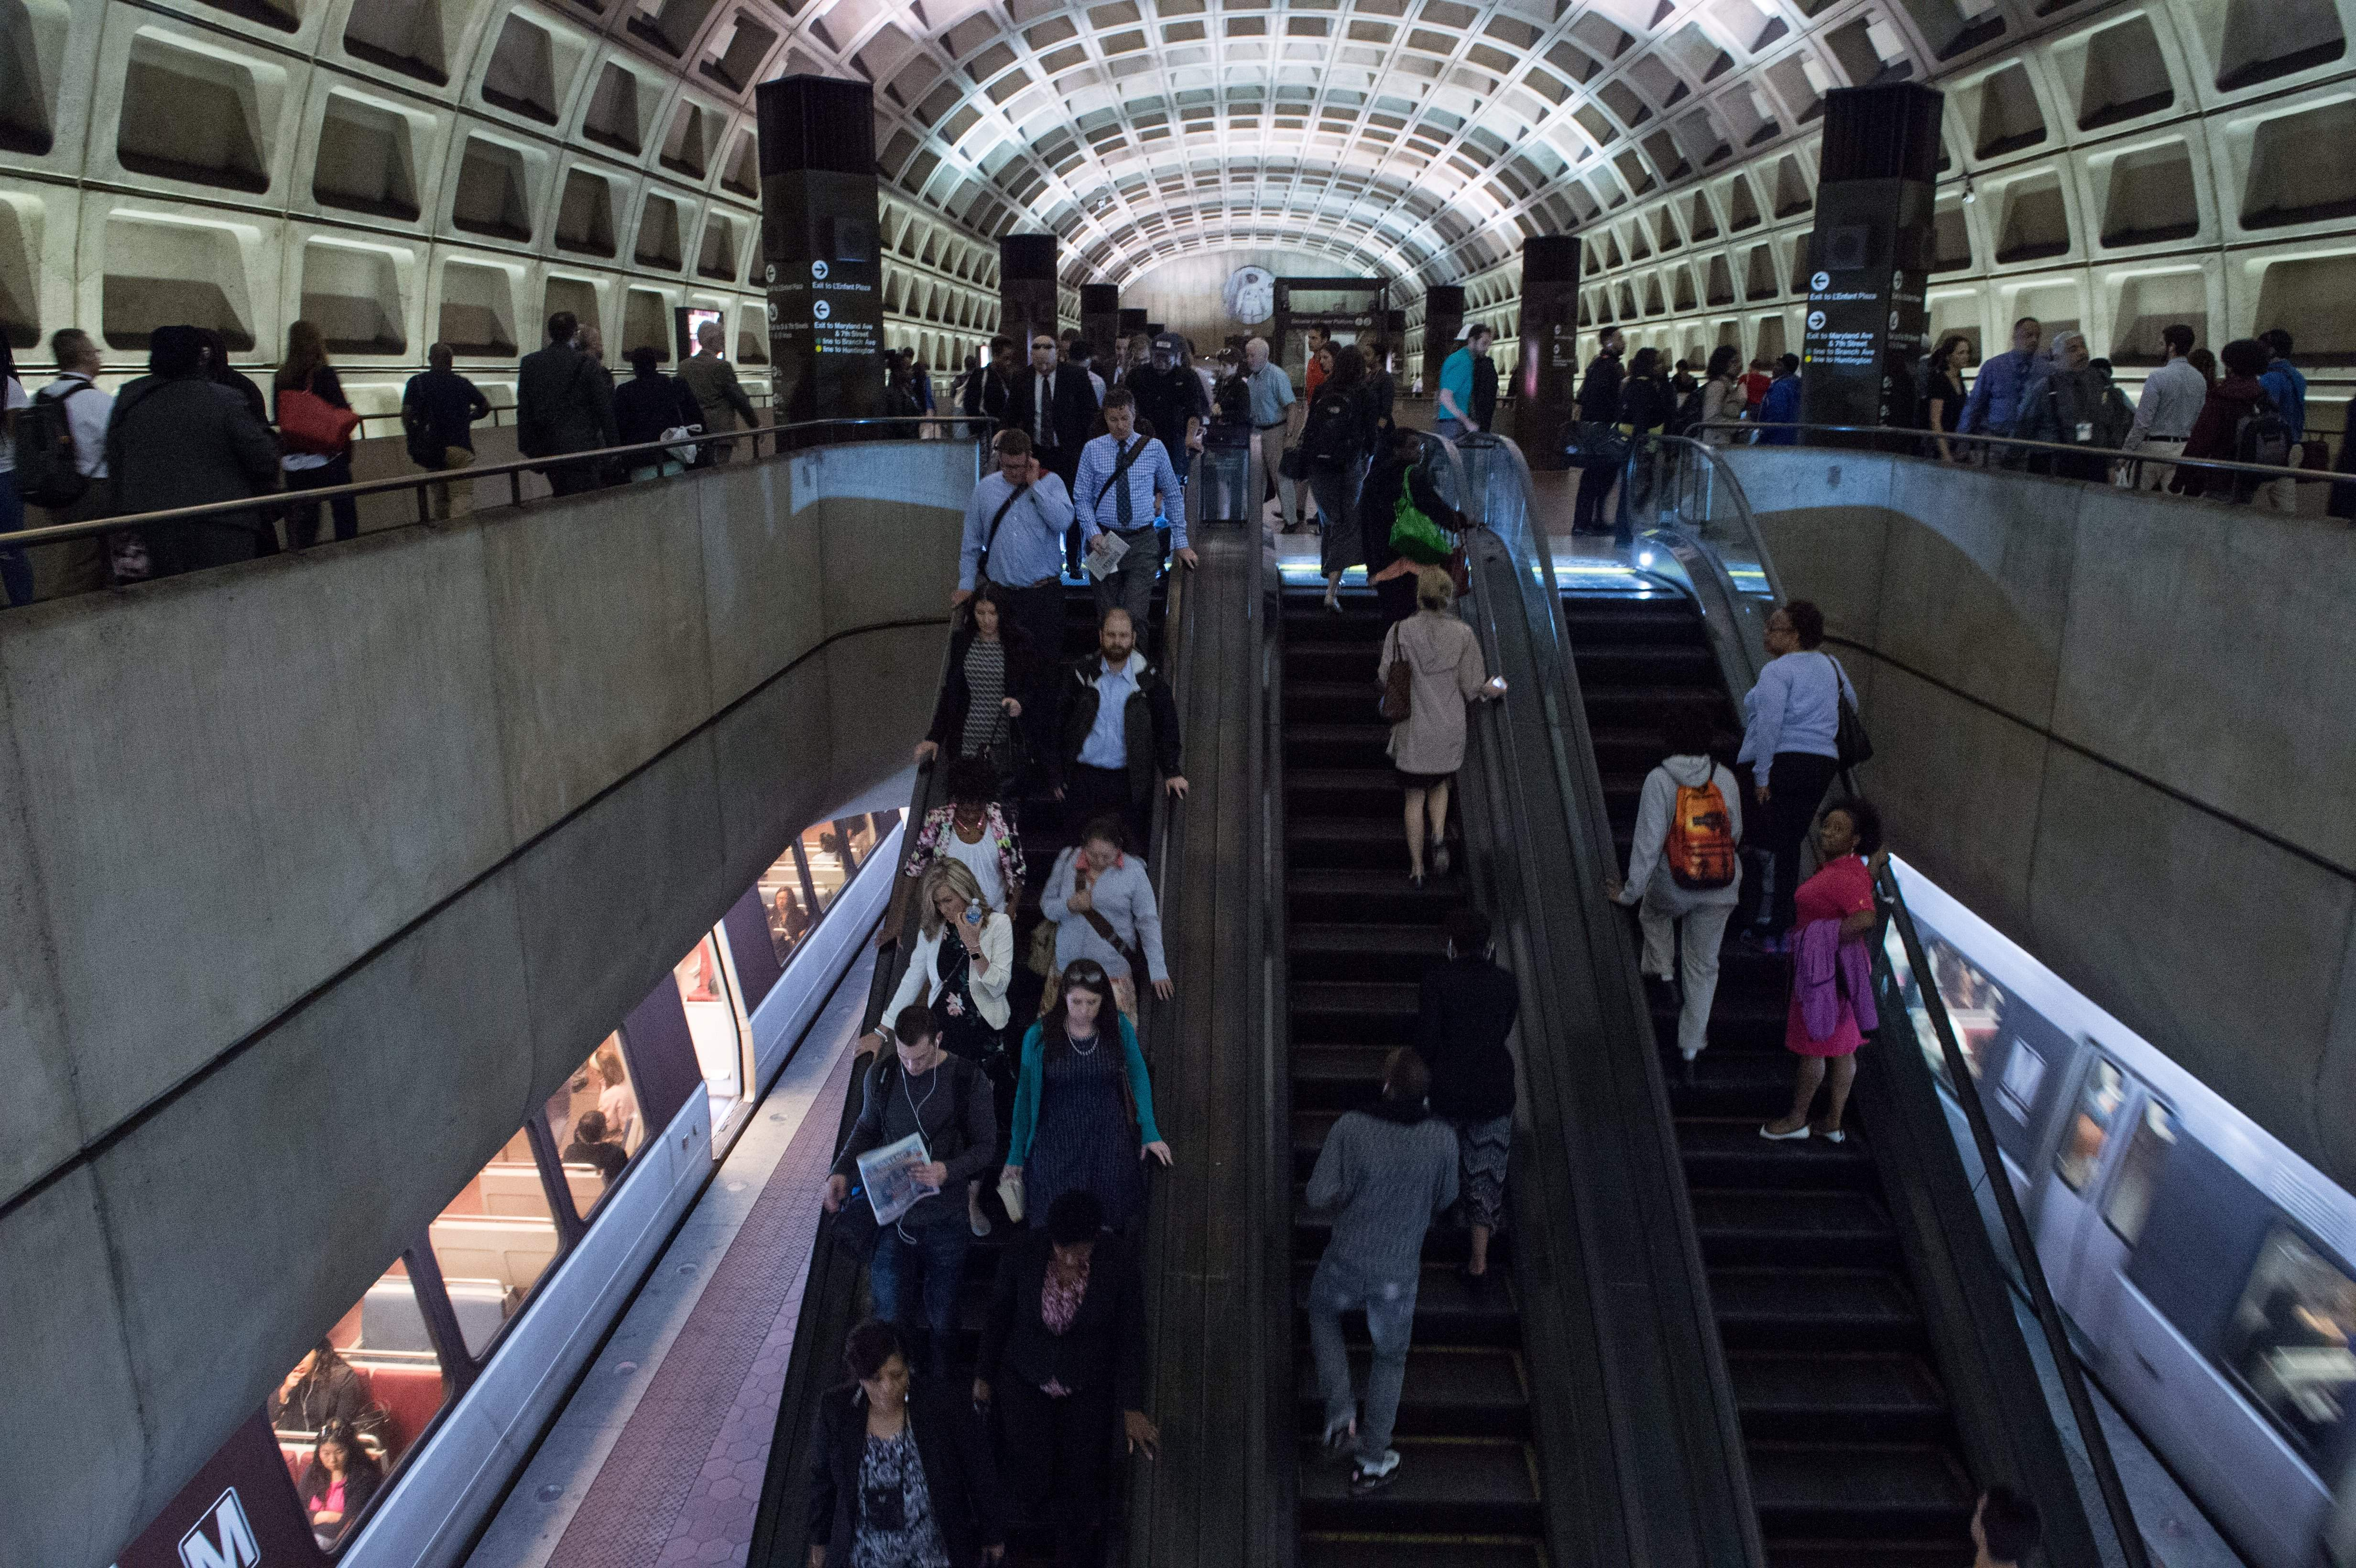 Commuters use the escalators at the L'Enfant Plaza station in Washington, DC, on May 24, 2016. (Photo: NICHOLAS KAMM/AFP/Getty Images)